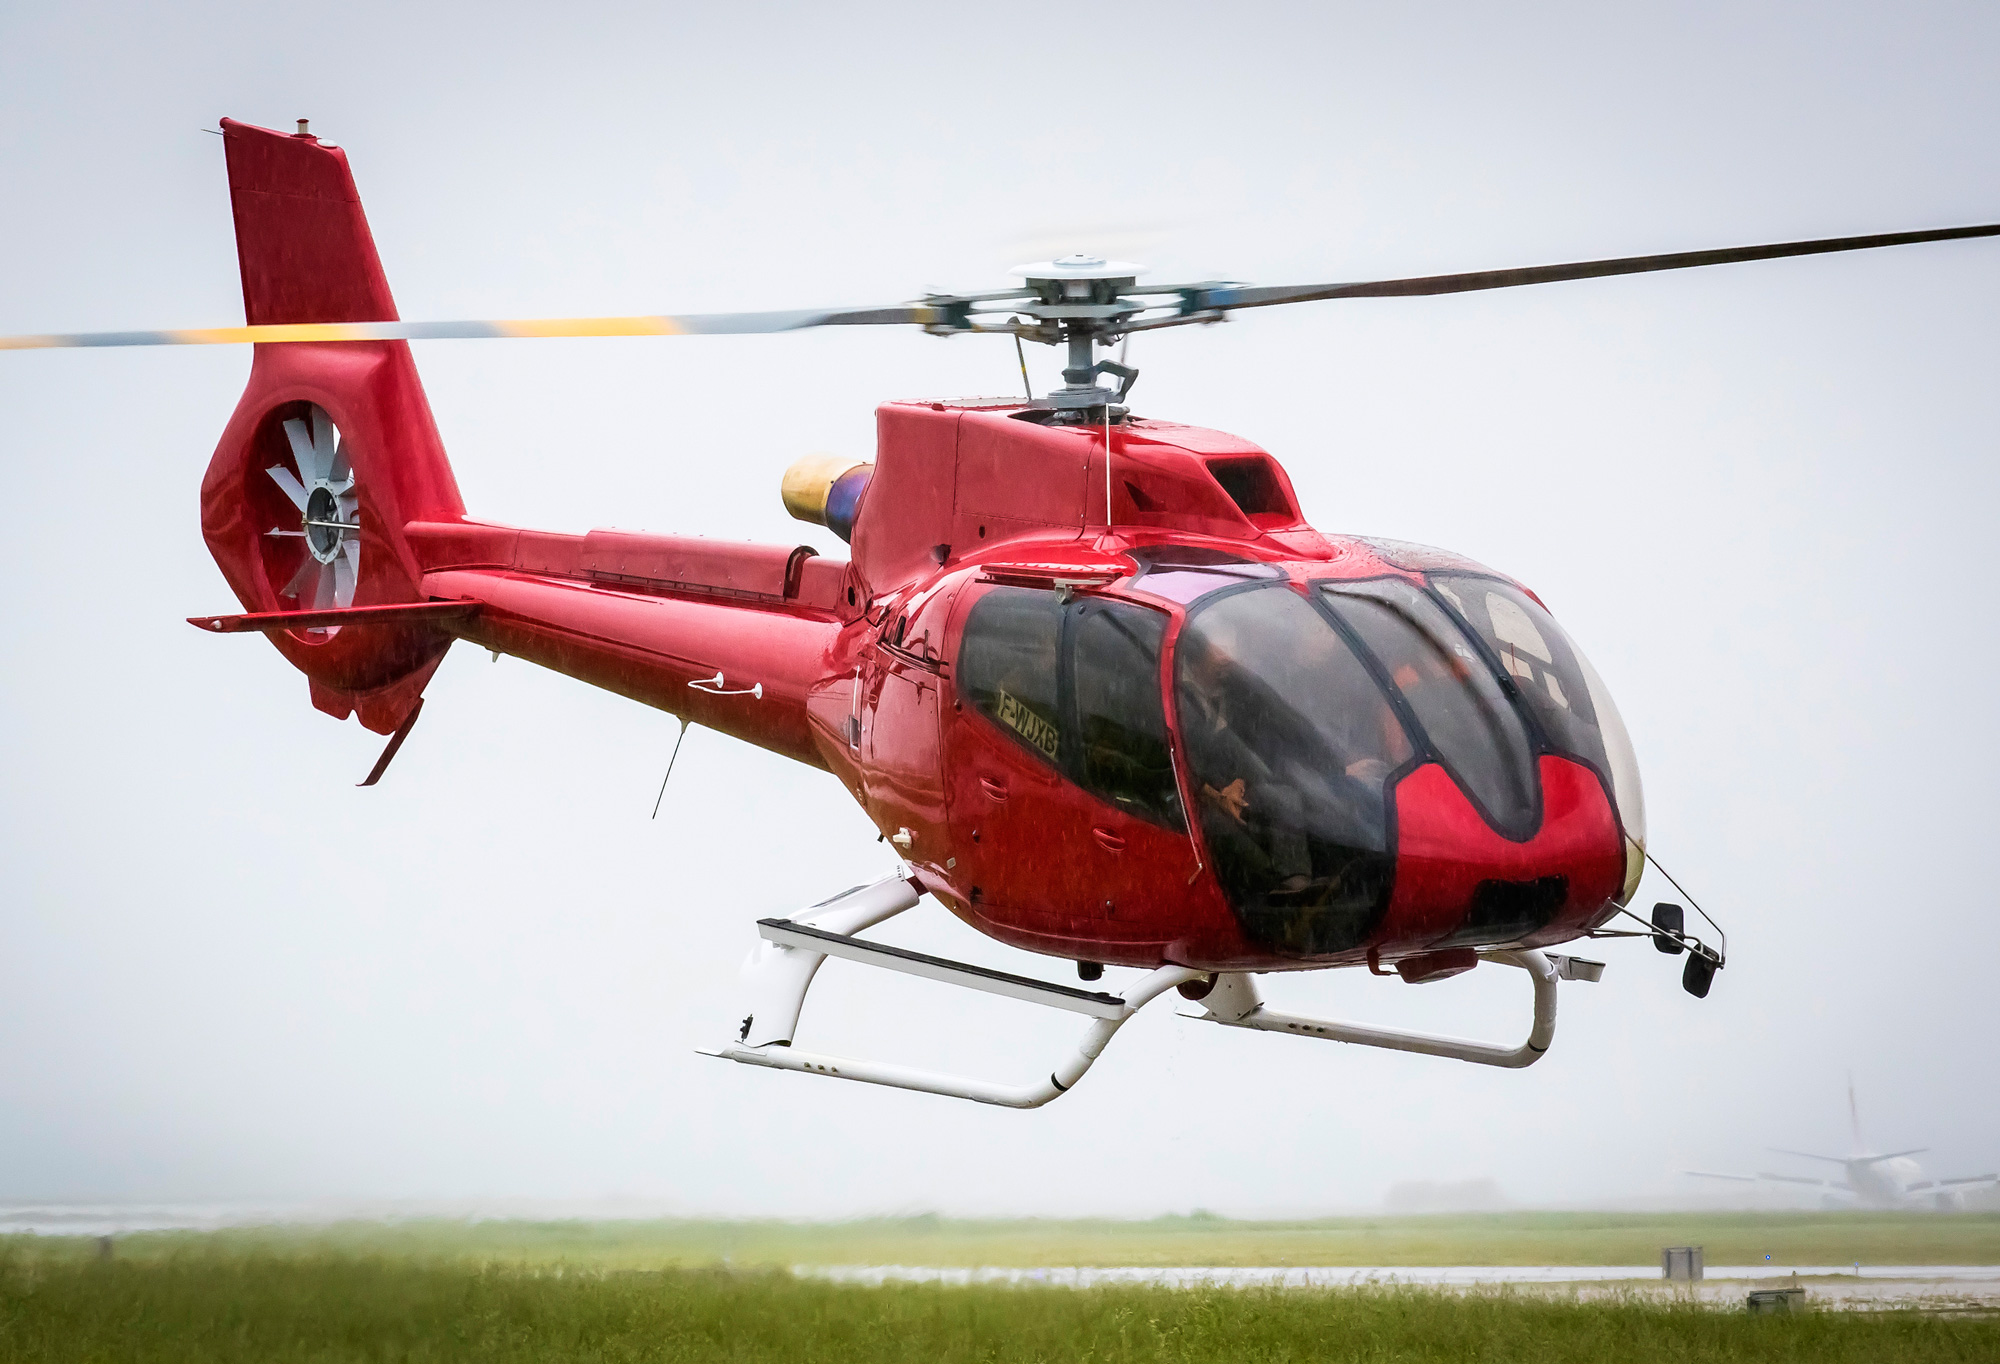 airbus helicopters with Helicopters H130 Finds New Application Aerial Work on 217 Airbus A320 besides H160 also Airbus Helicopters H145   Private 248042 large furthermore Helicopters H130 Finds New Application Aerial Work together with Helicopter Hover Challenge.